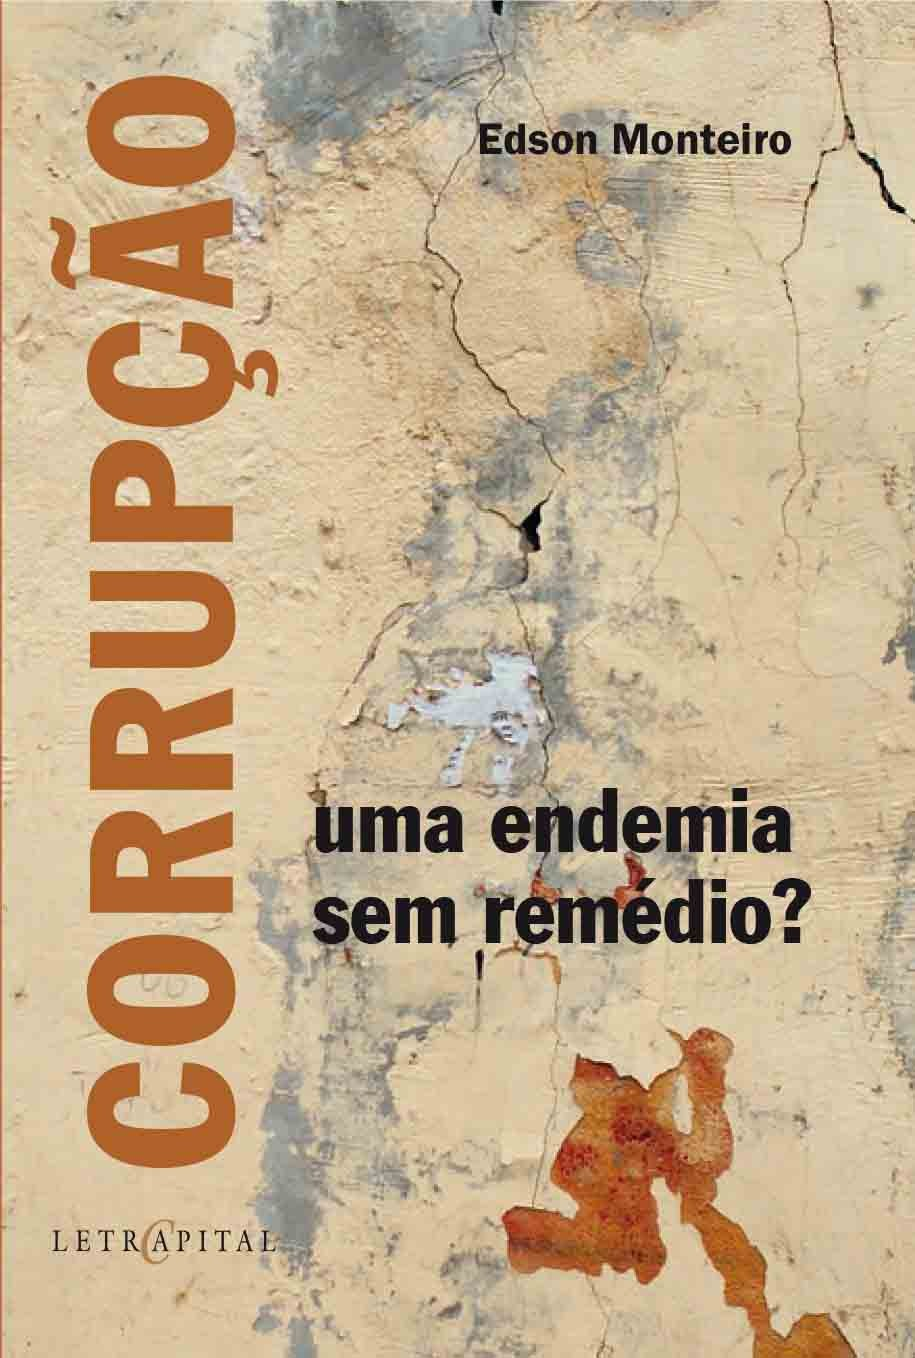 Corrupção, uma endemia sem remédio?